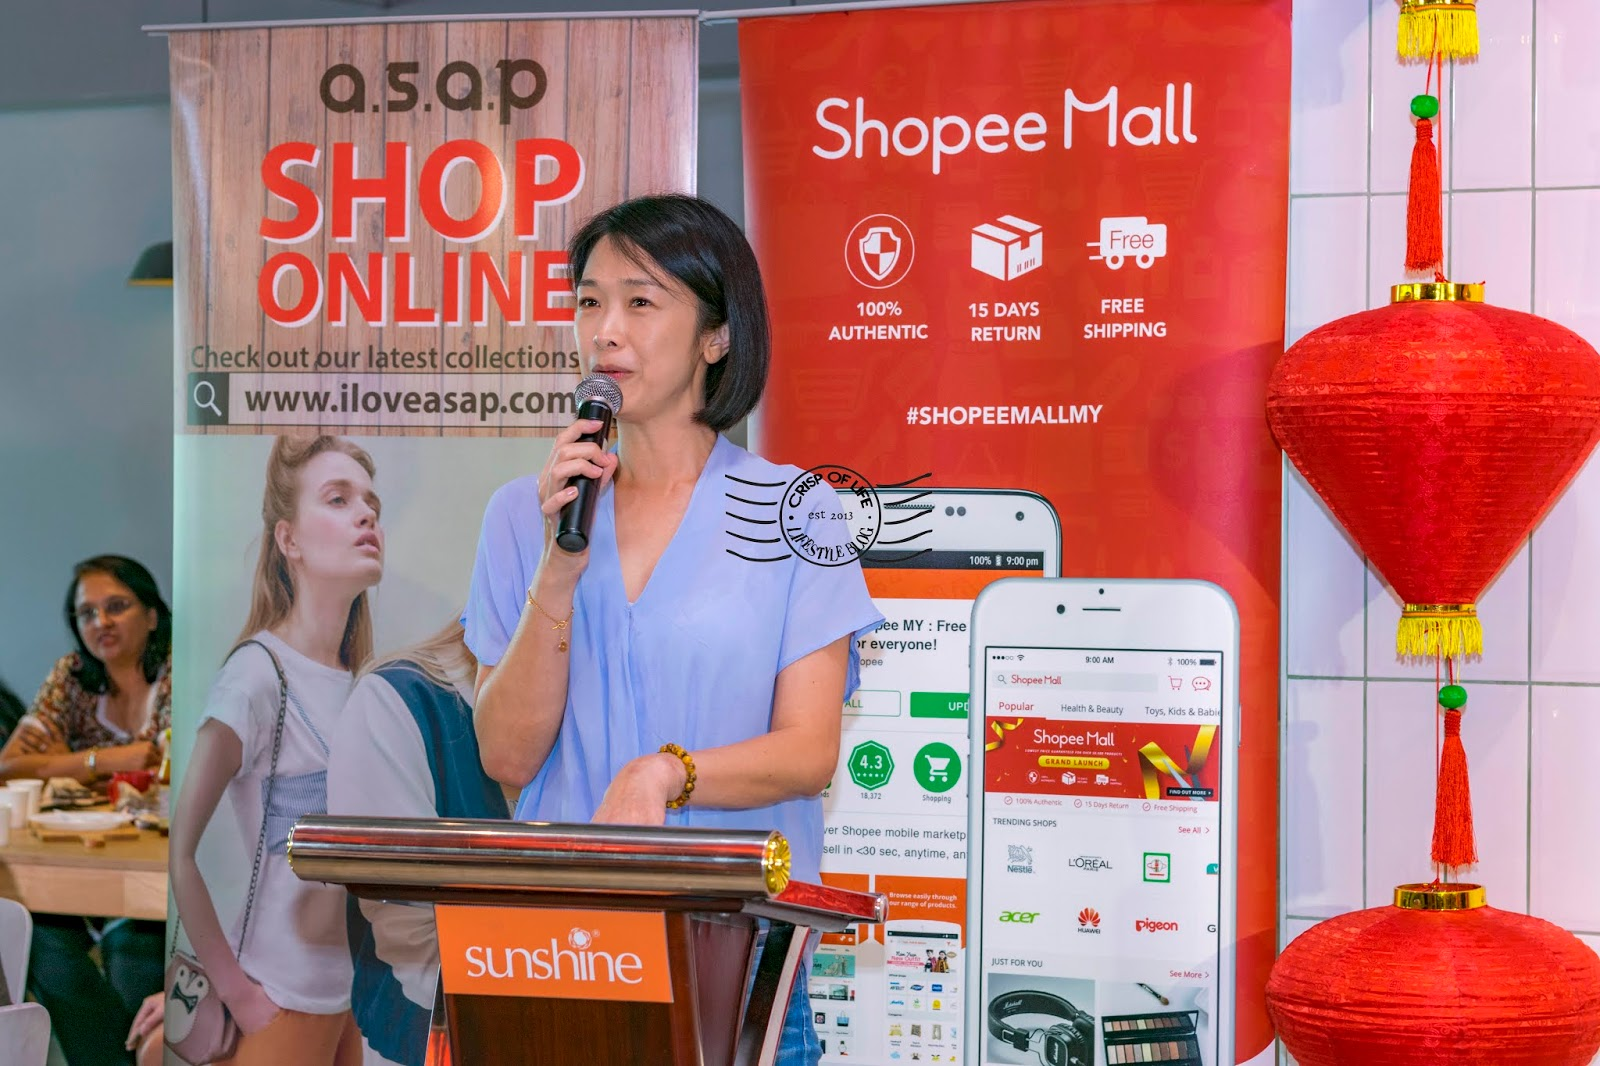 Sunshine online official store Shopee